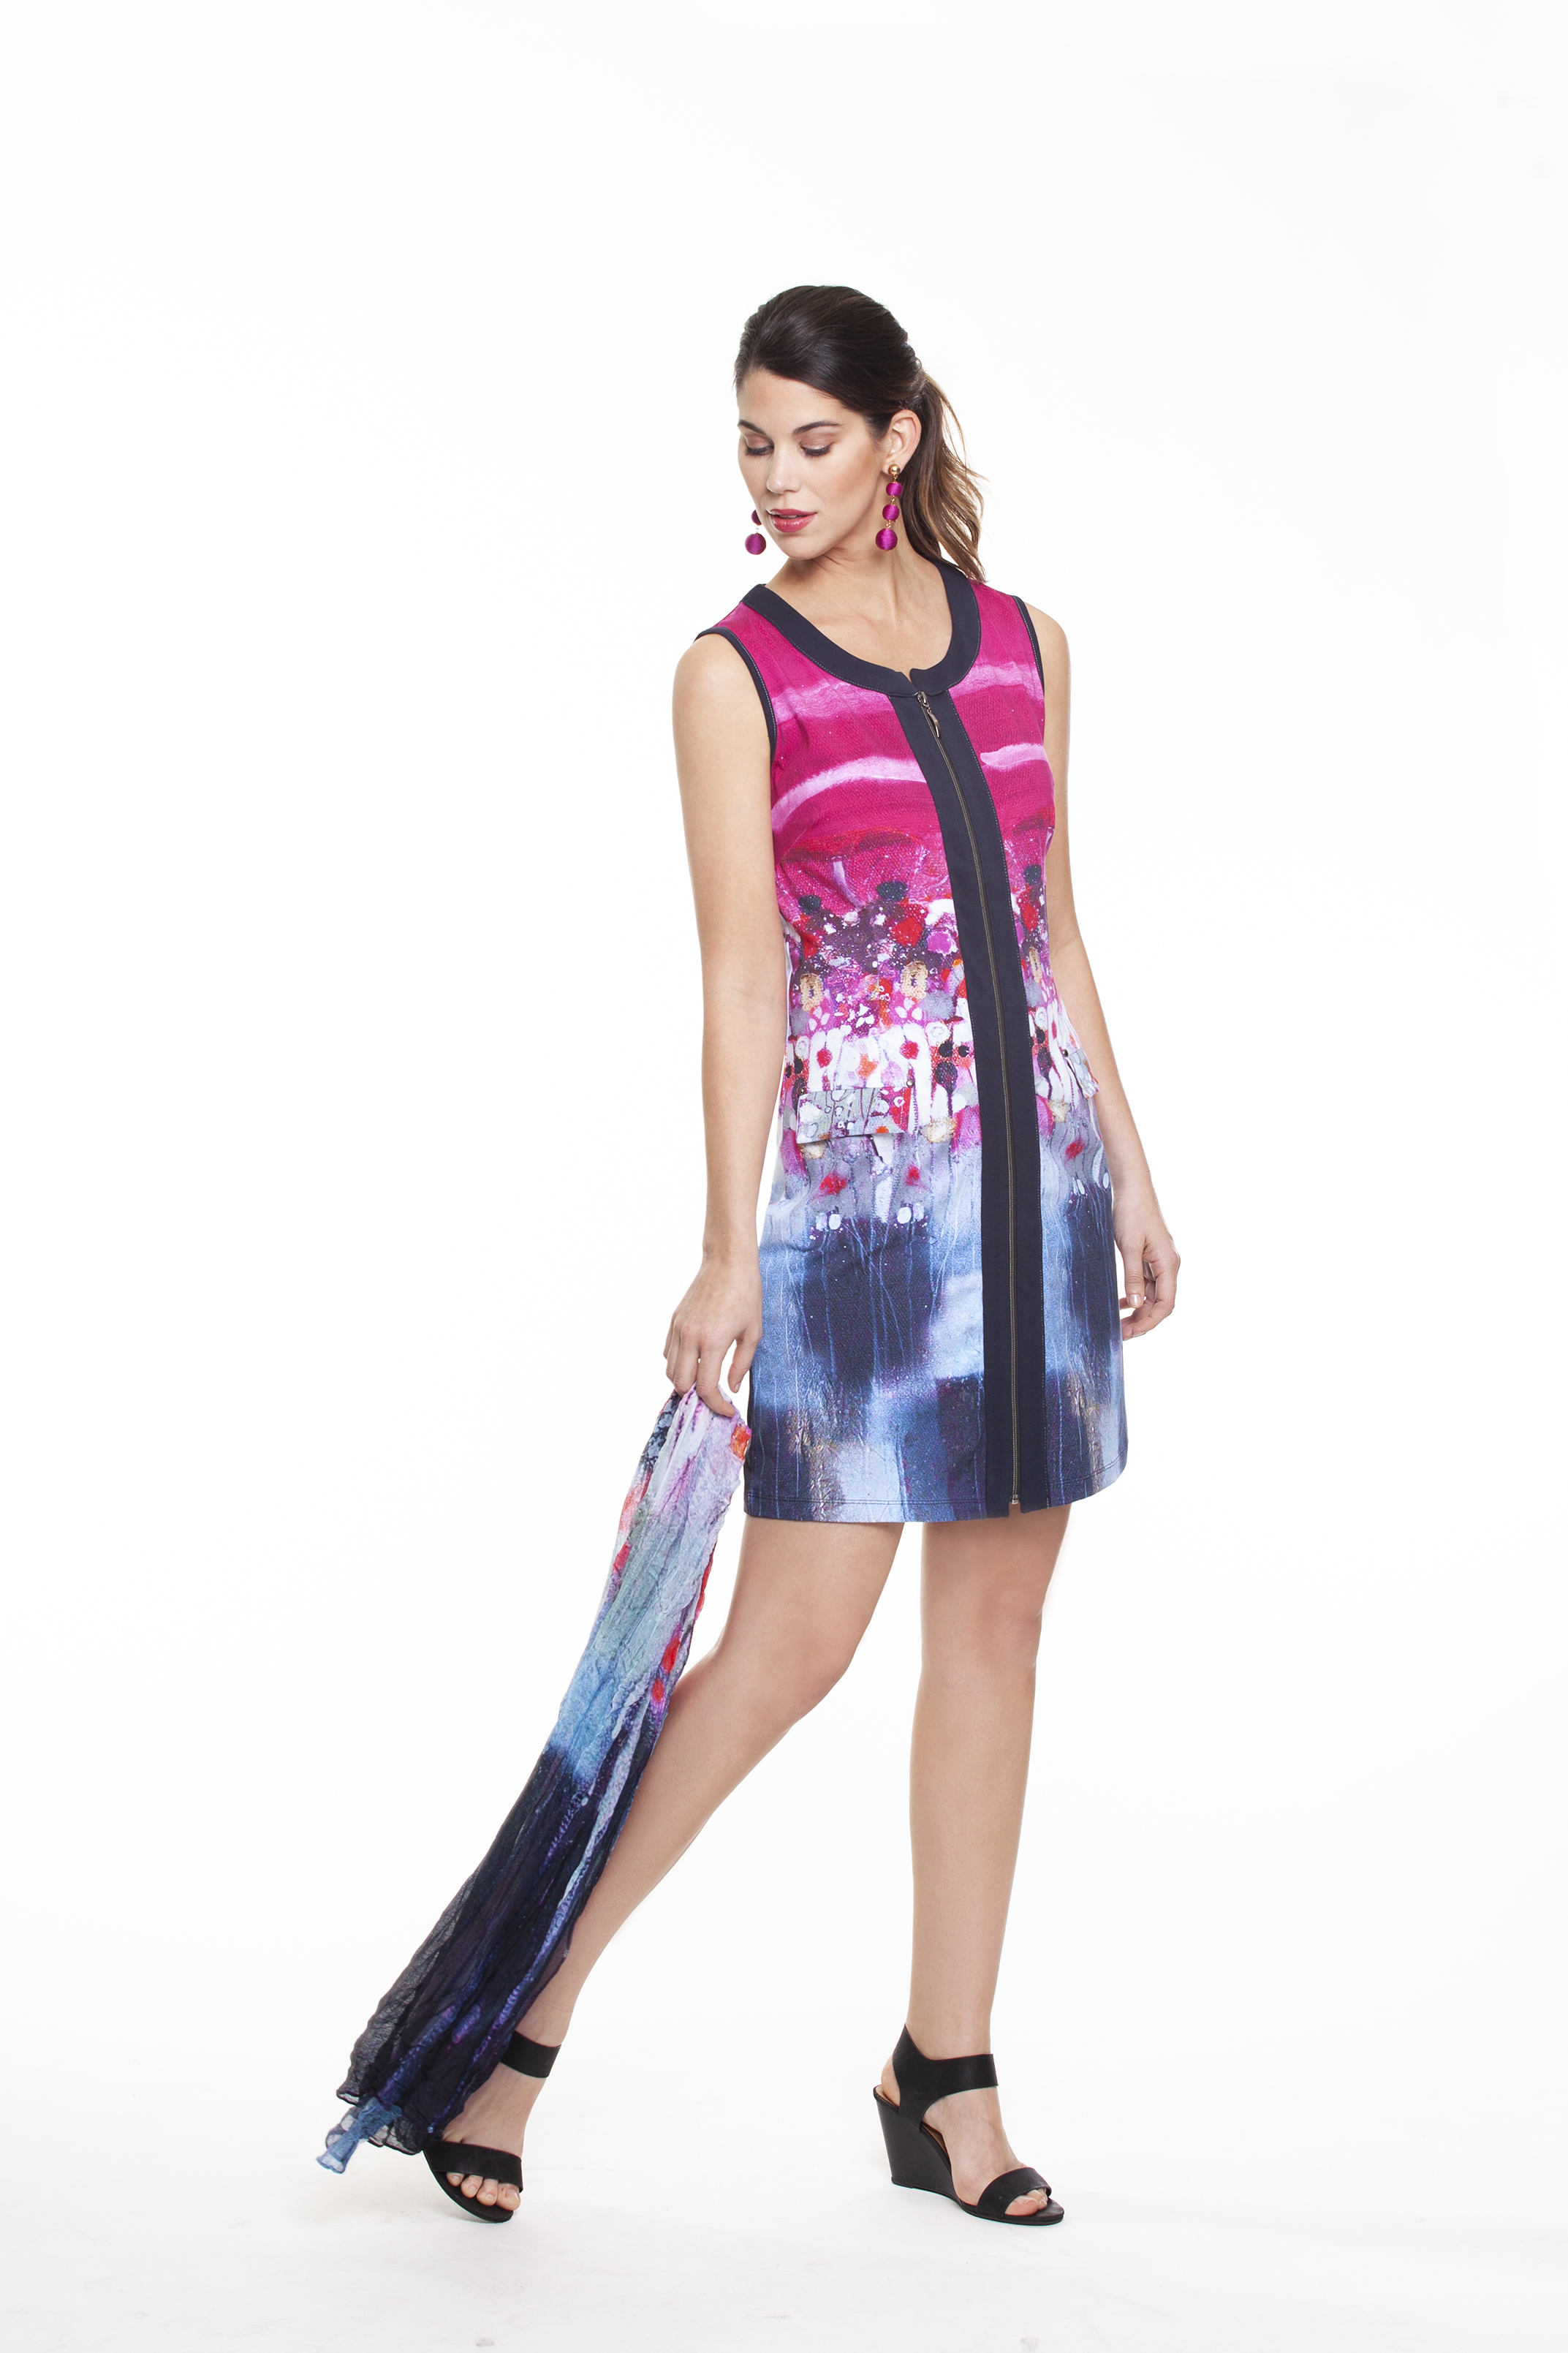 Simply Art Dolcezza: Fuschia Candy Storm Abstract Art Zip Dress (2 Left!)